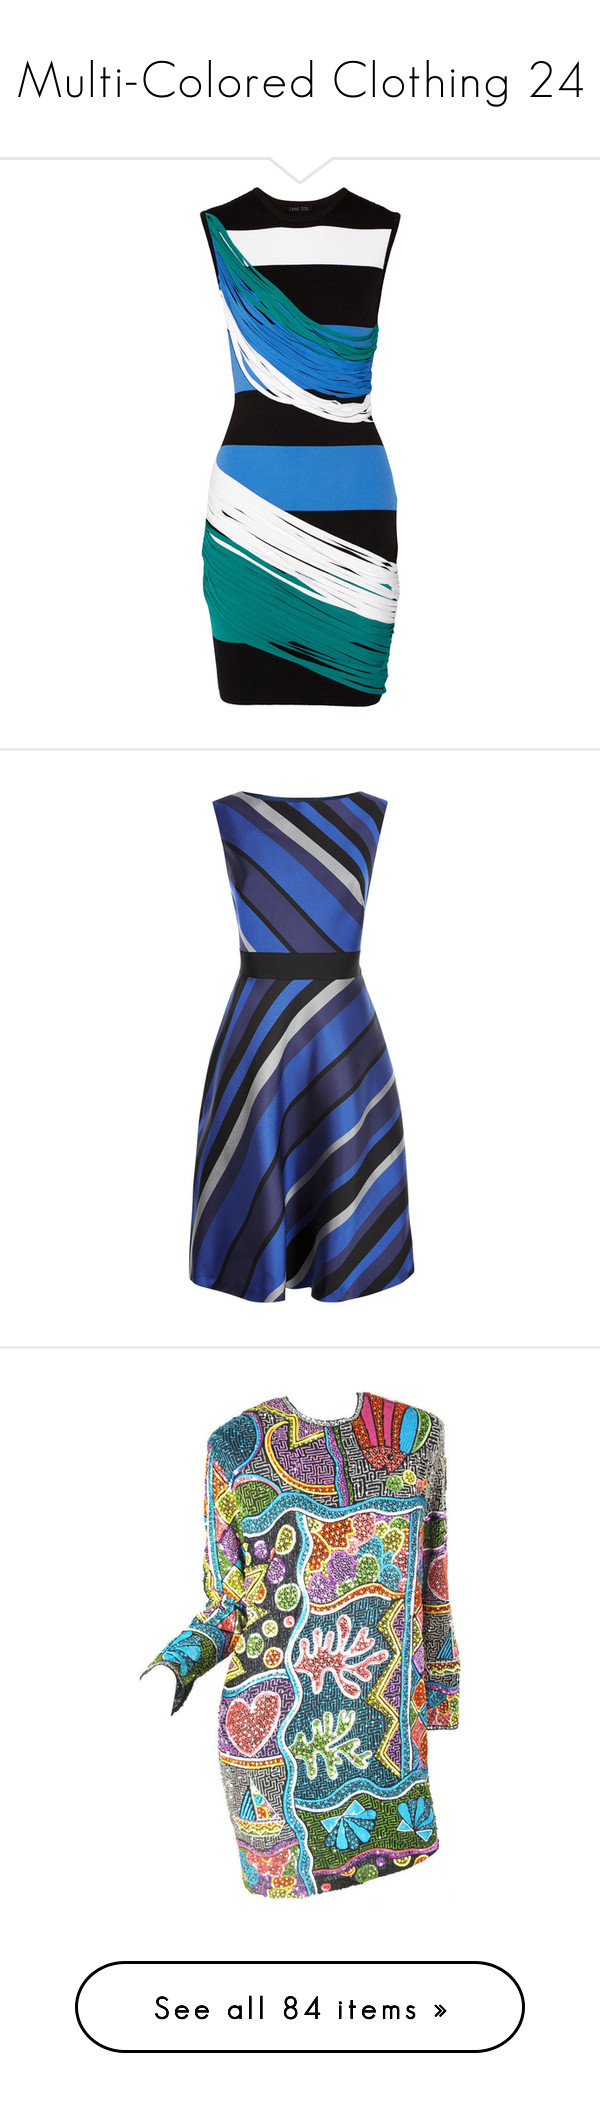 """Multi-Colored Clothing 24"" by franceseattle ❤ liked on Polyvore featuring dresses, blue, pique, stripe, multi color striped dress, short colorful dresses, multi colored dress, pique dress, blue dress and sleeveless maxi dress"